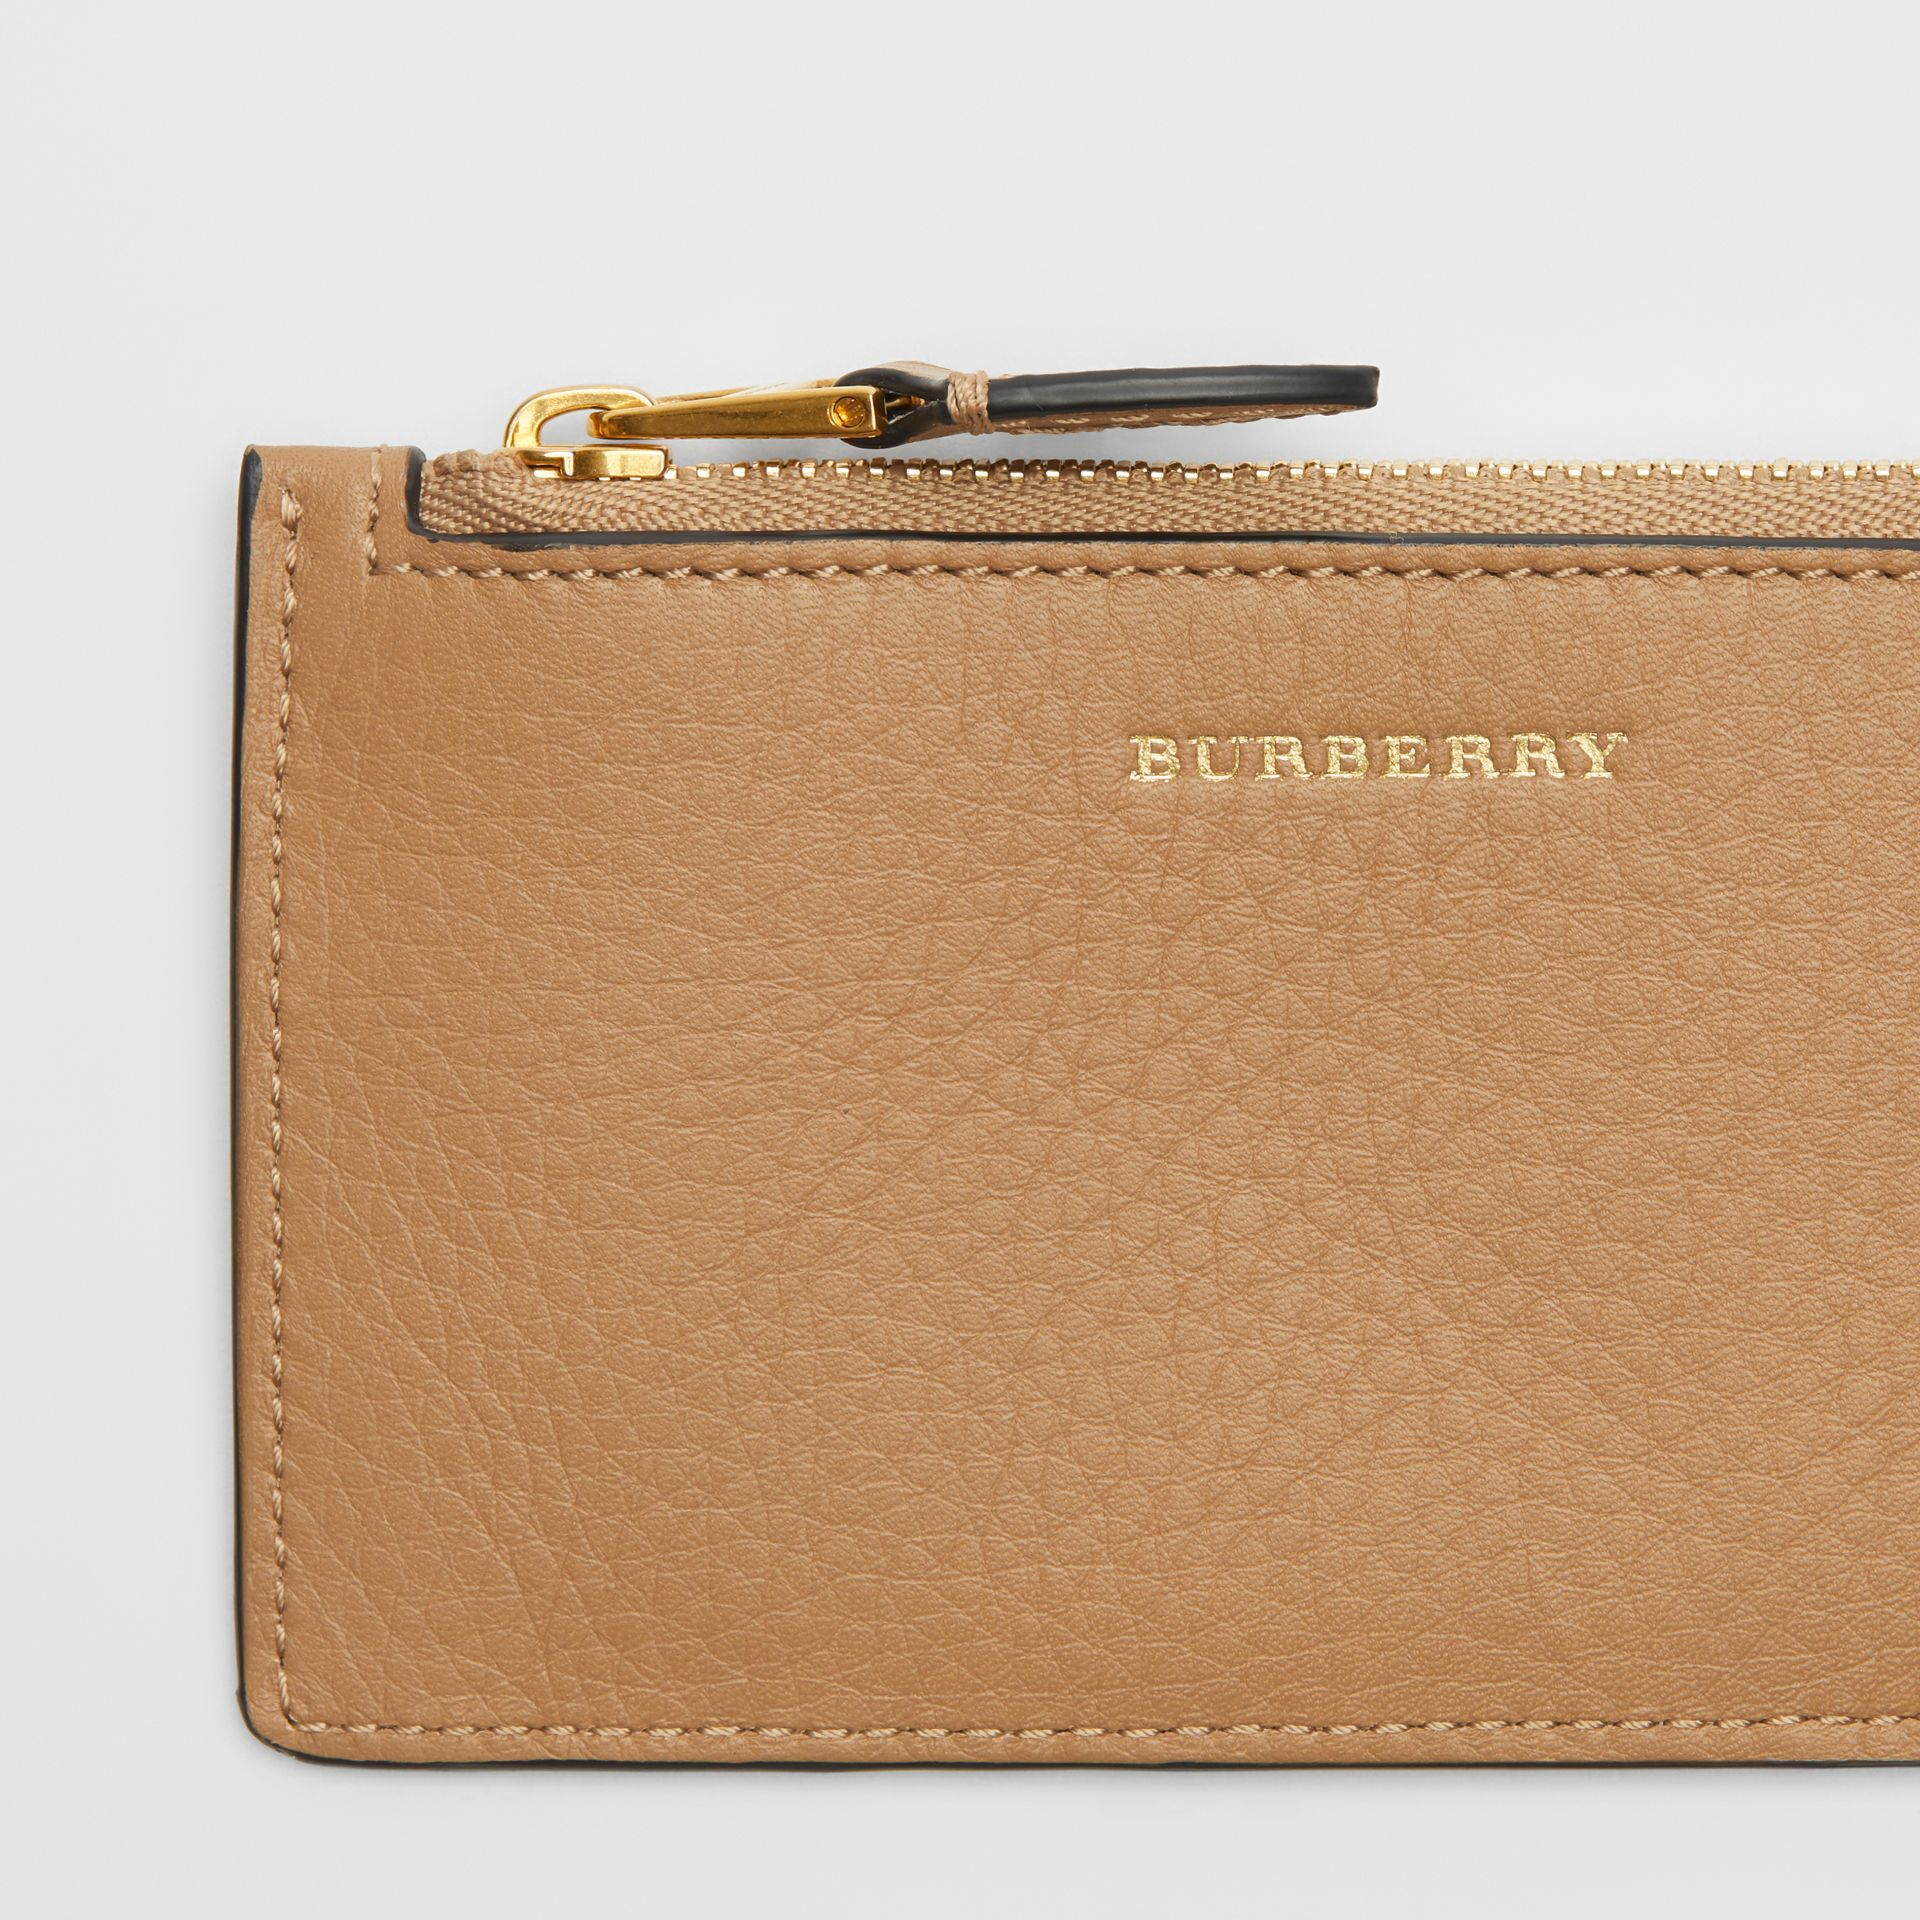 Two-tone Leather Card Case in Light Camel - Women | Burberry - gallery image 1